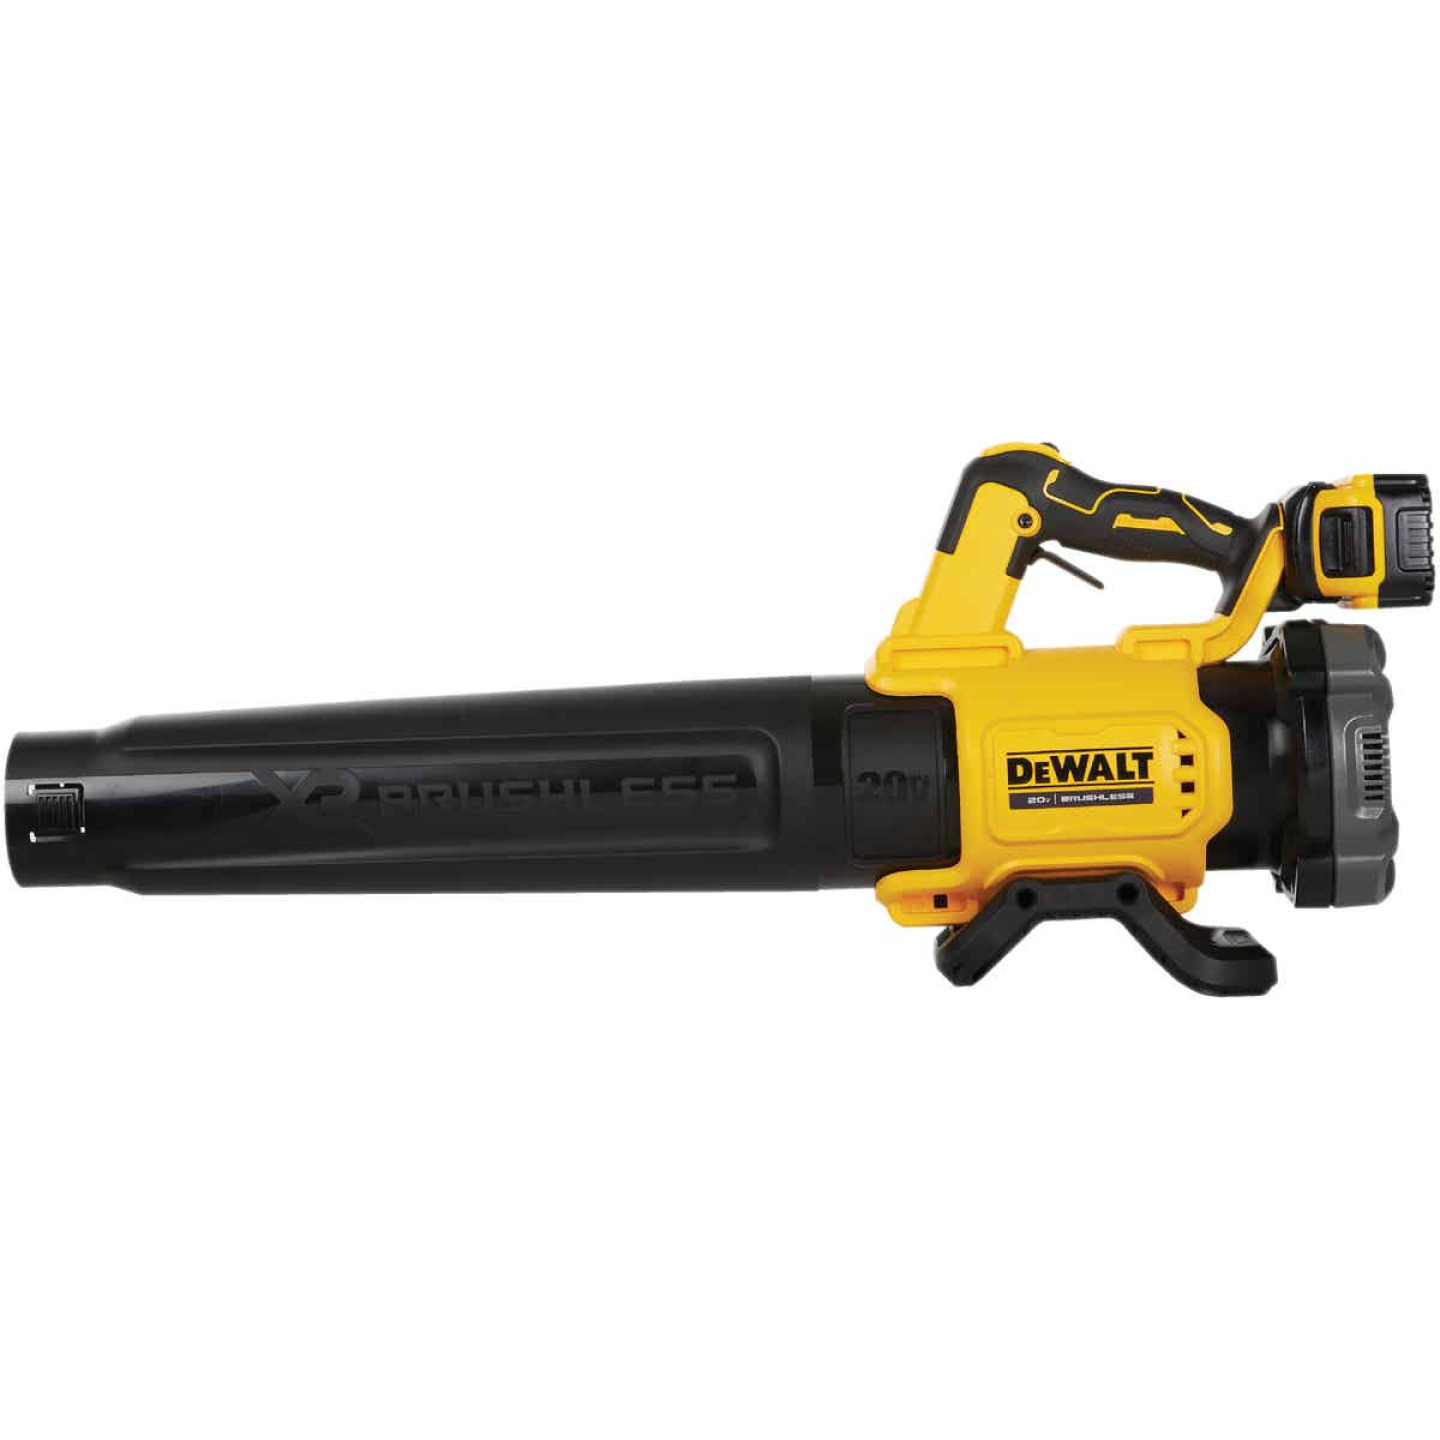 DeWalT MAX XR 90 MPH 20V Brushless Handheld Blower Image 7